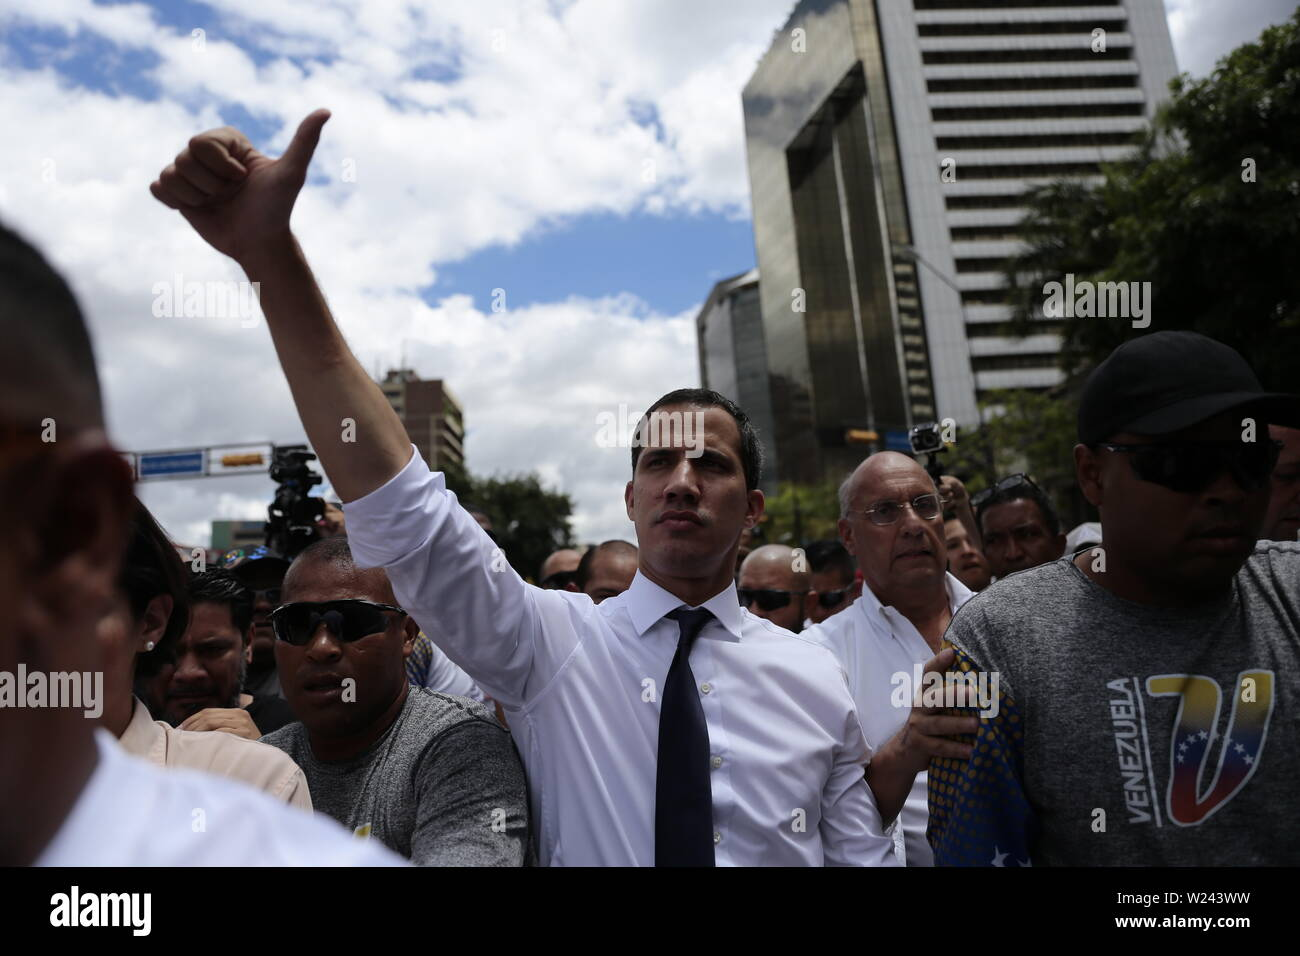 Caracas, Venezuela. 05th July, 2019. Juan Guaido, Venezuela's self-proclaimed interim president, is optimistic in front of supporters in a protest on Independence Day. Guaido has called on civil society to protest against the government of Head of State Maduro. Venezuela commemorates on July 5 the independence of Spain in 1811. Credit: Rafael Hernandez/dpa/Alamy Live News - Stock Image